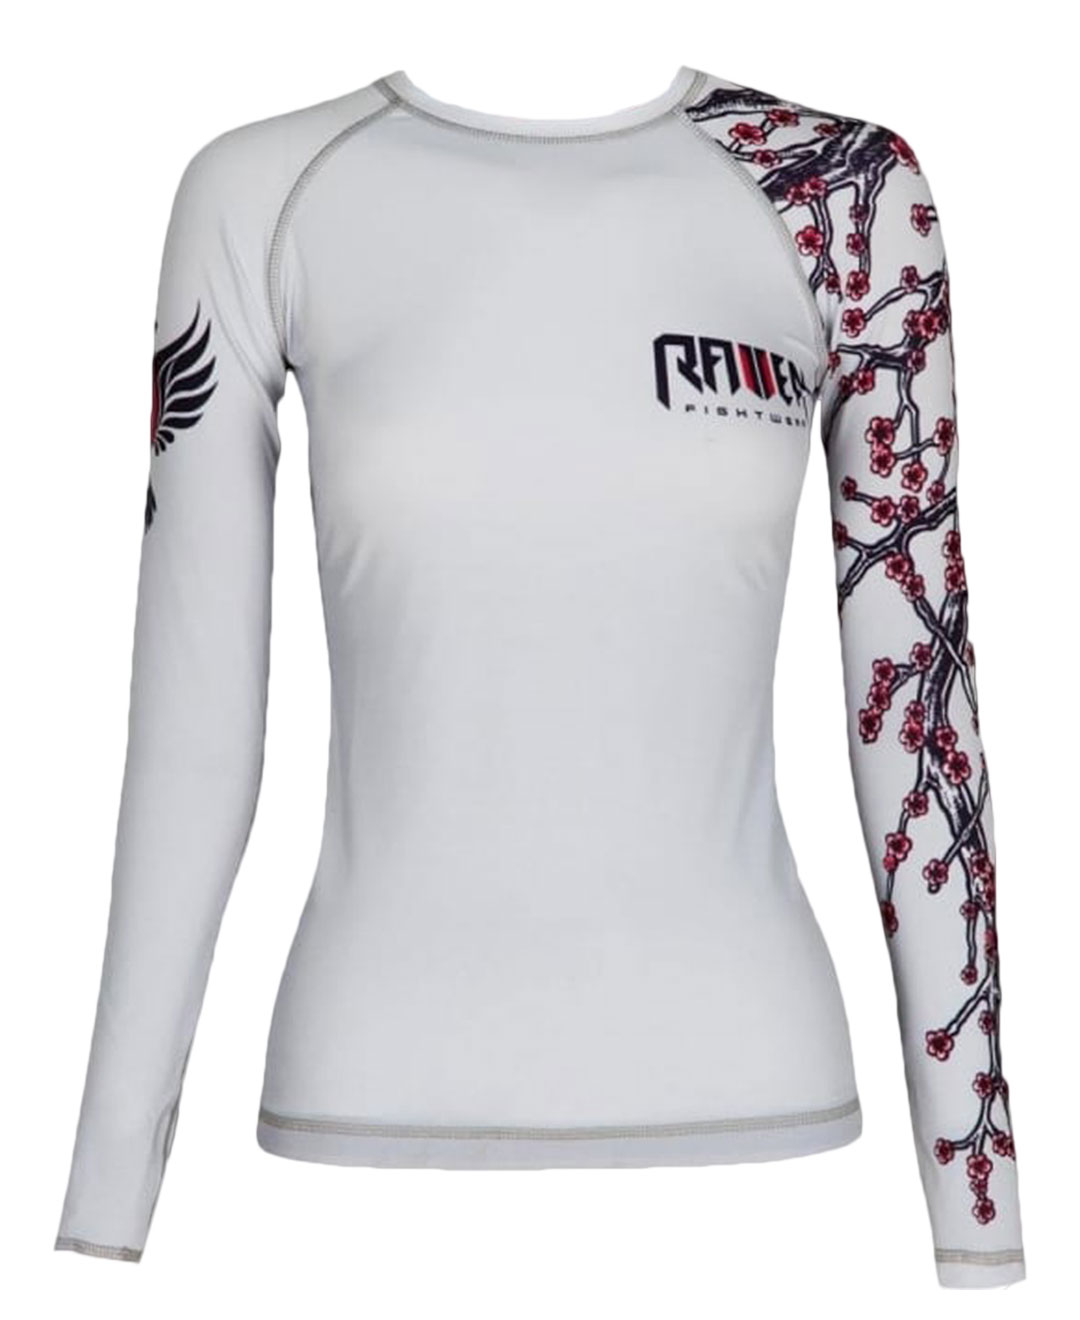 Raven Fightwear Women's Sakura Rash Guard MMA BJJ White by Raven Fightwear